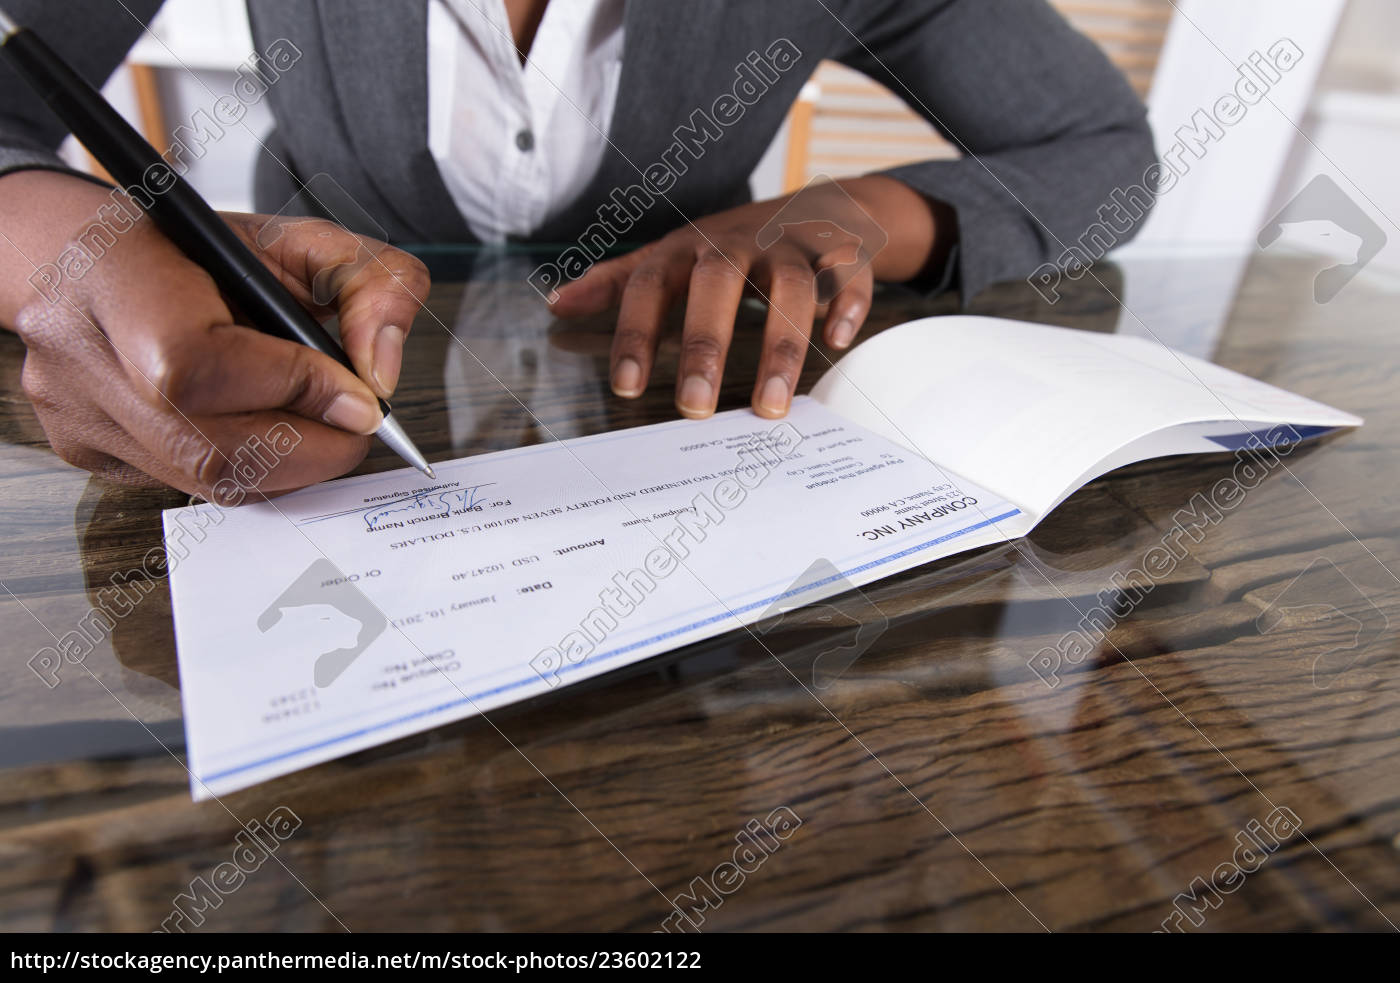 human, hand, signing, cheque - 23602122